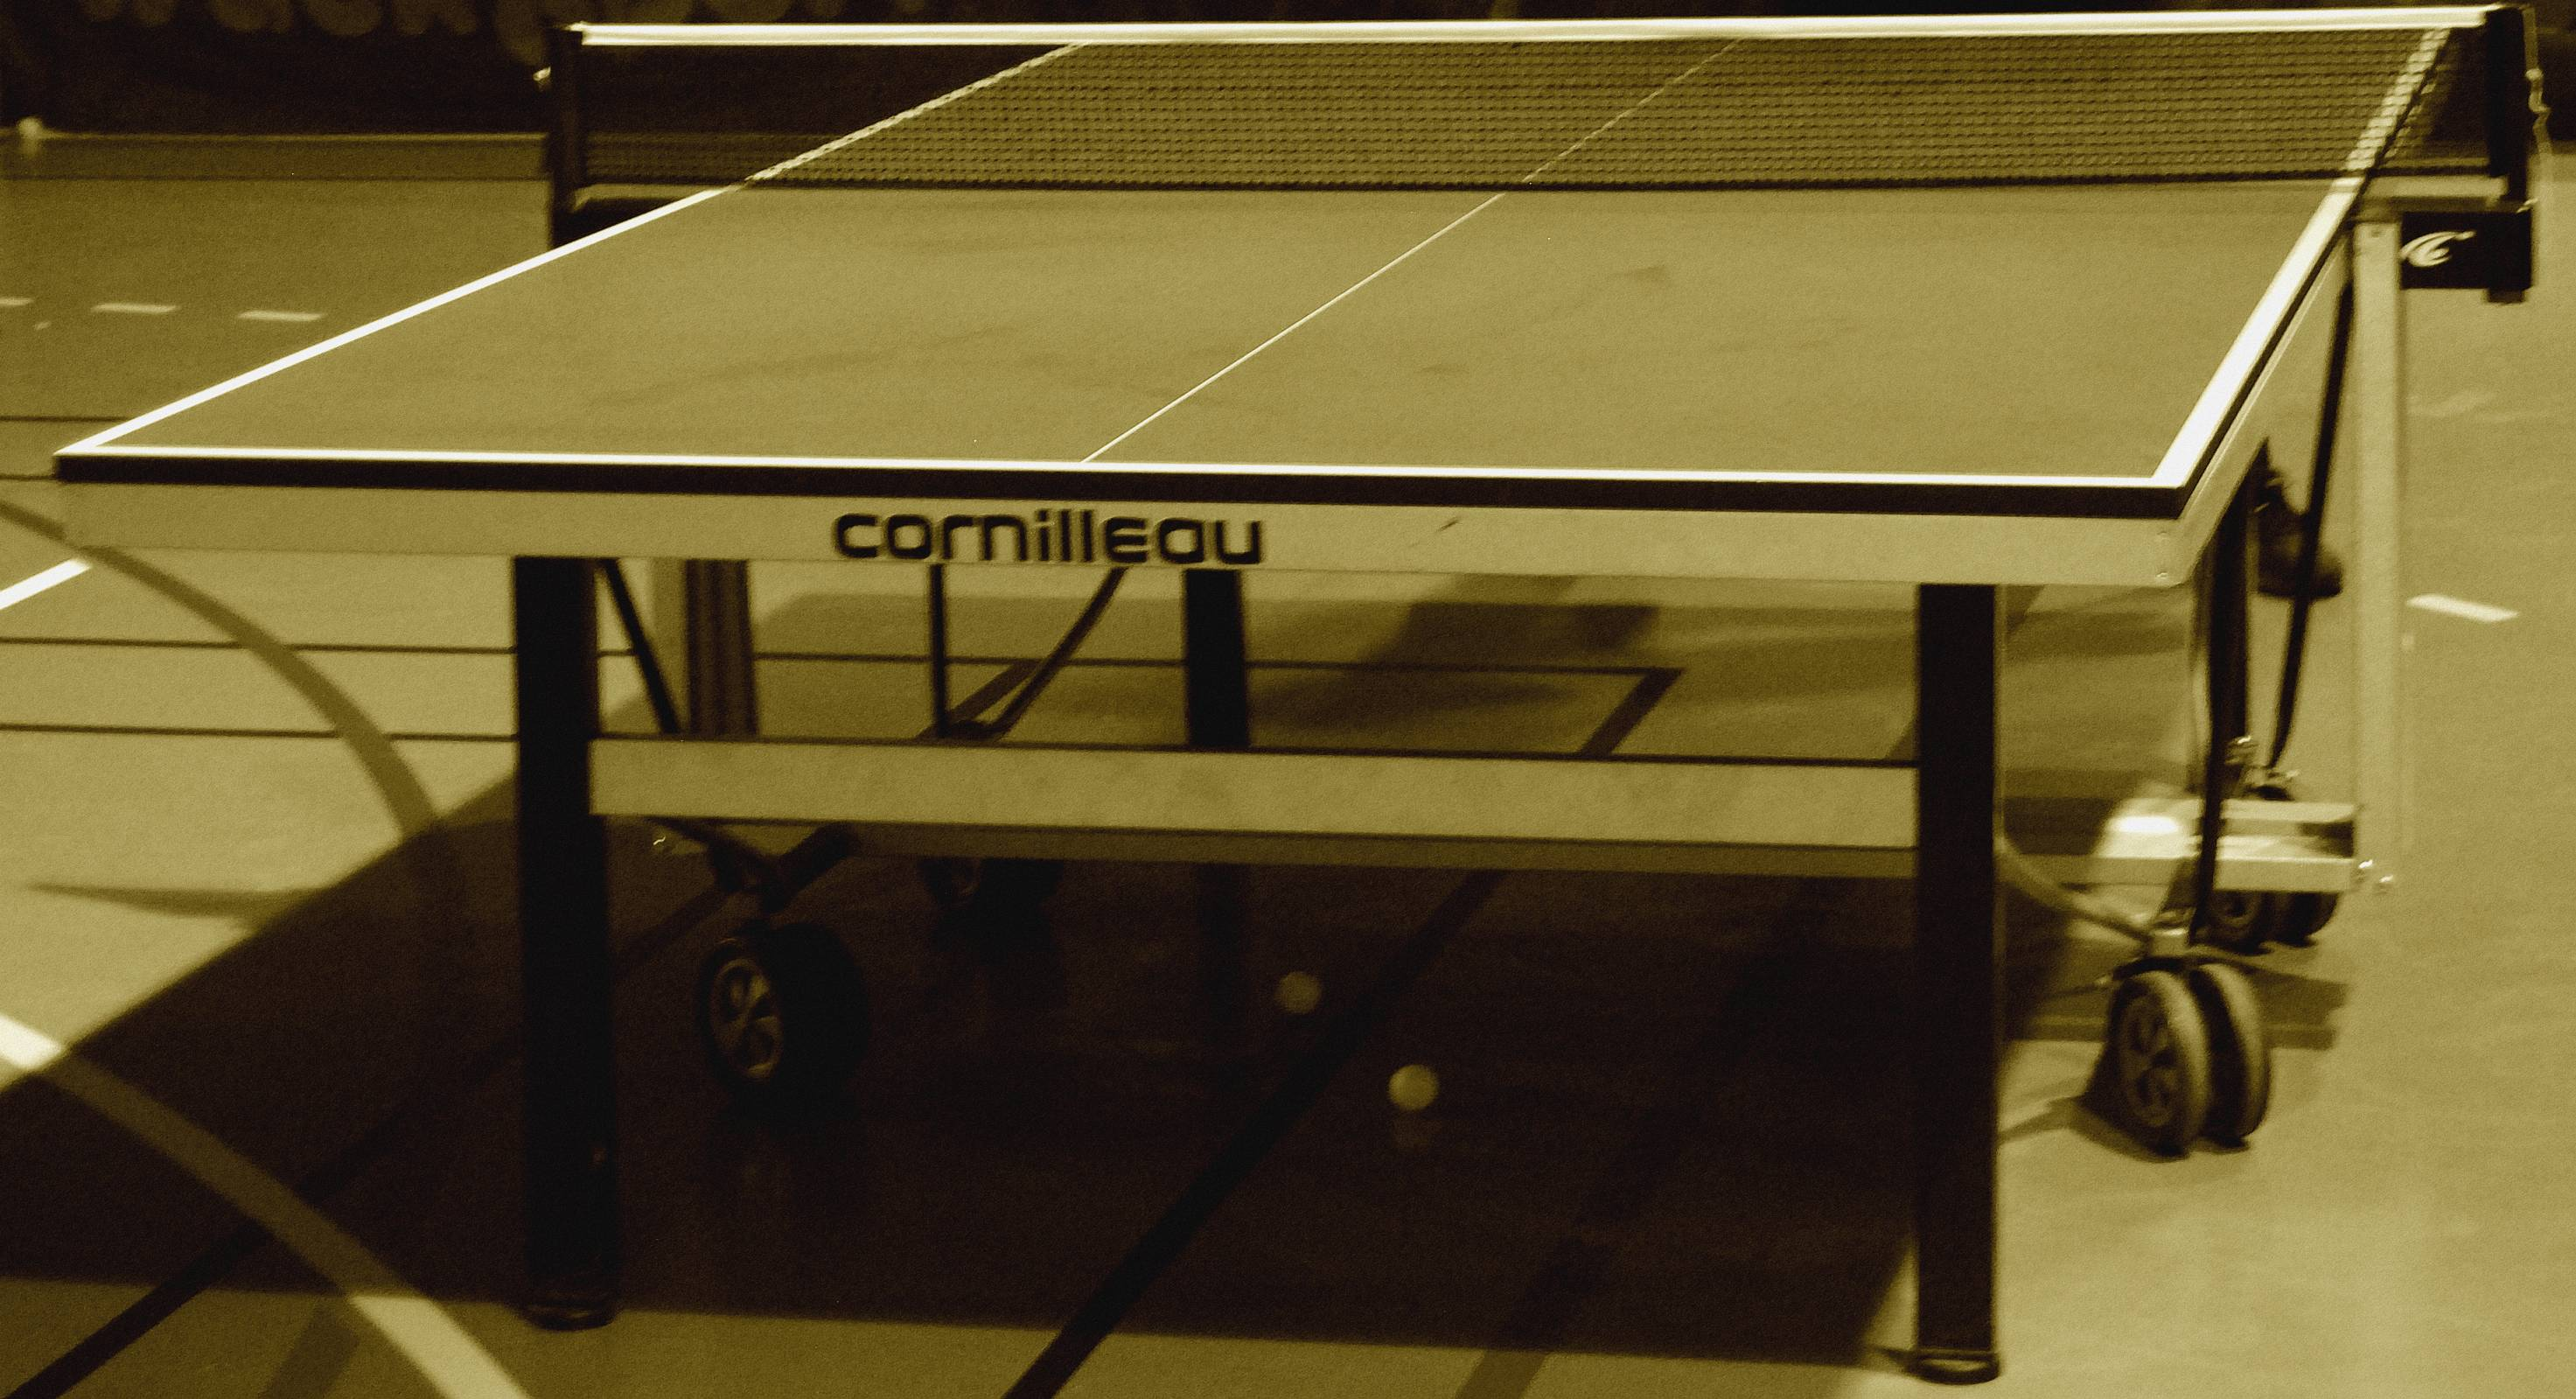 Table club tennis de table de saint germain l s corbeil - Comite departemental de tennis de table ...